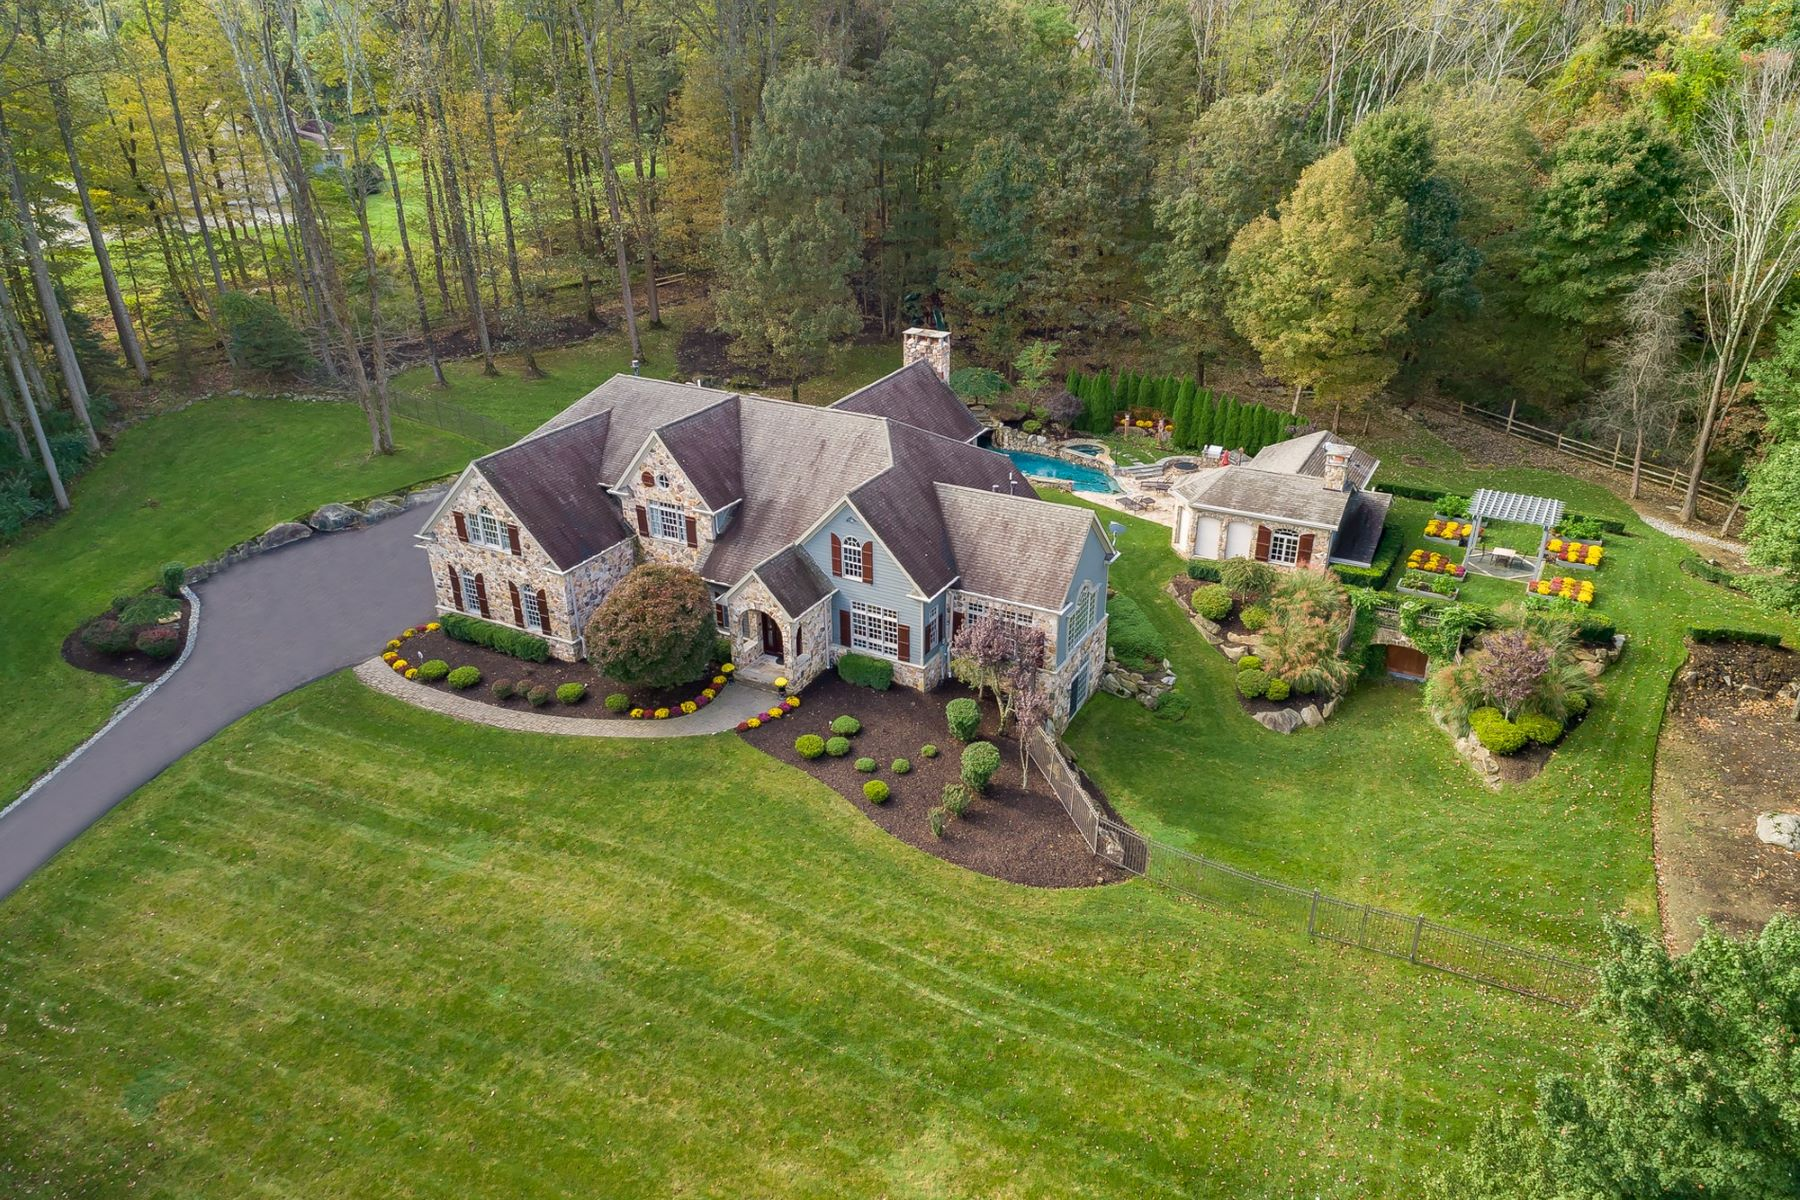 Single Family Home for Sale at Entertainers Dream Home 11 Old Mine Road, Tewksbury Township, New Jersey 07830 United States